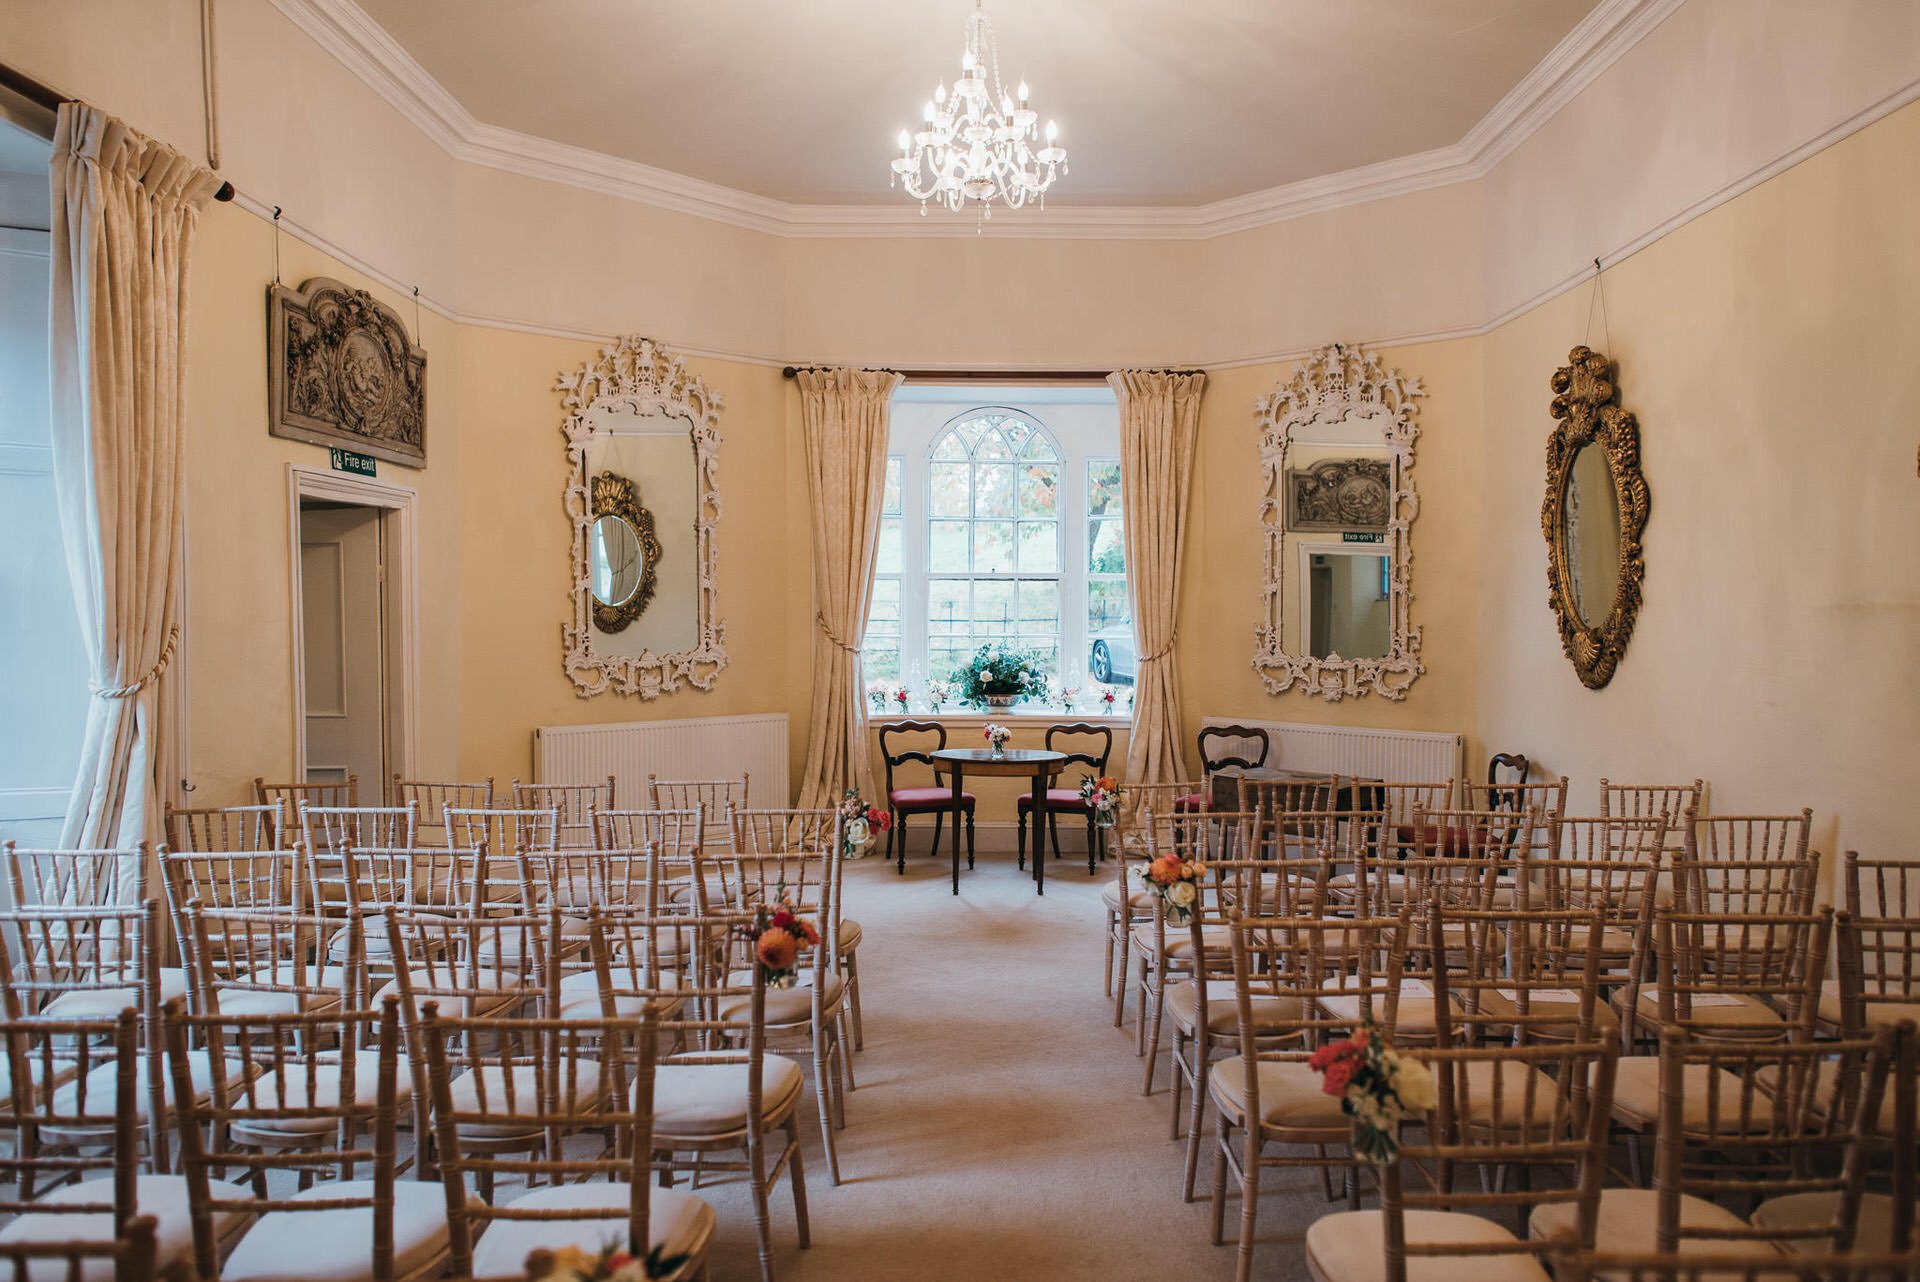 Civil wedding ceremony inside at Pennard house